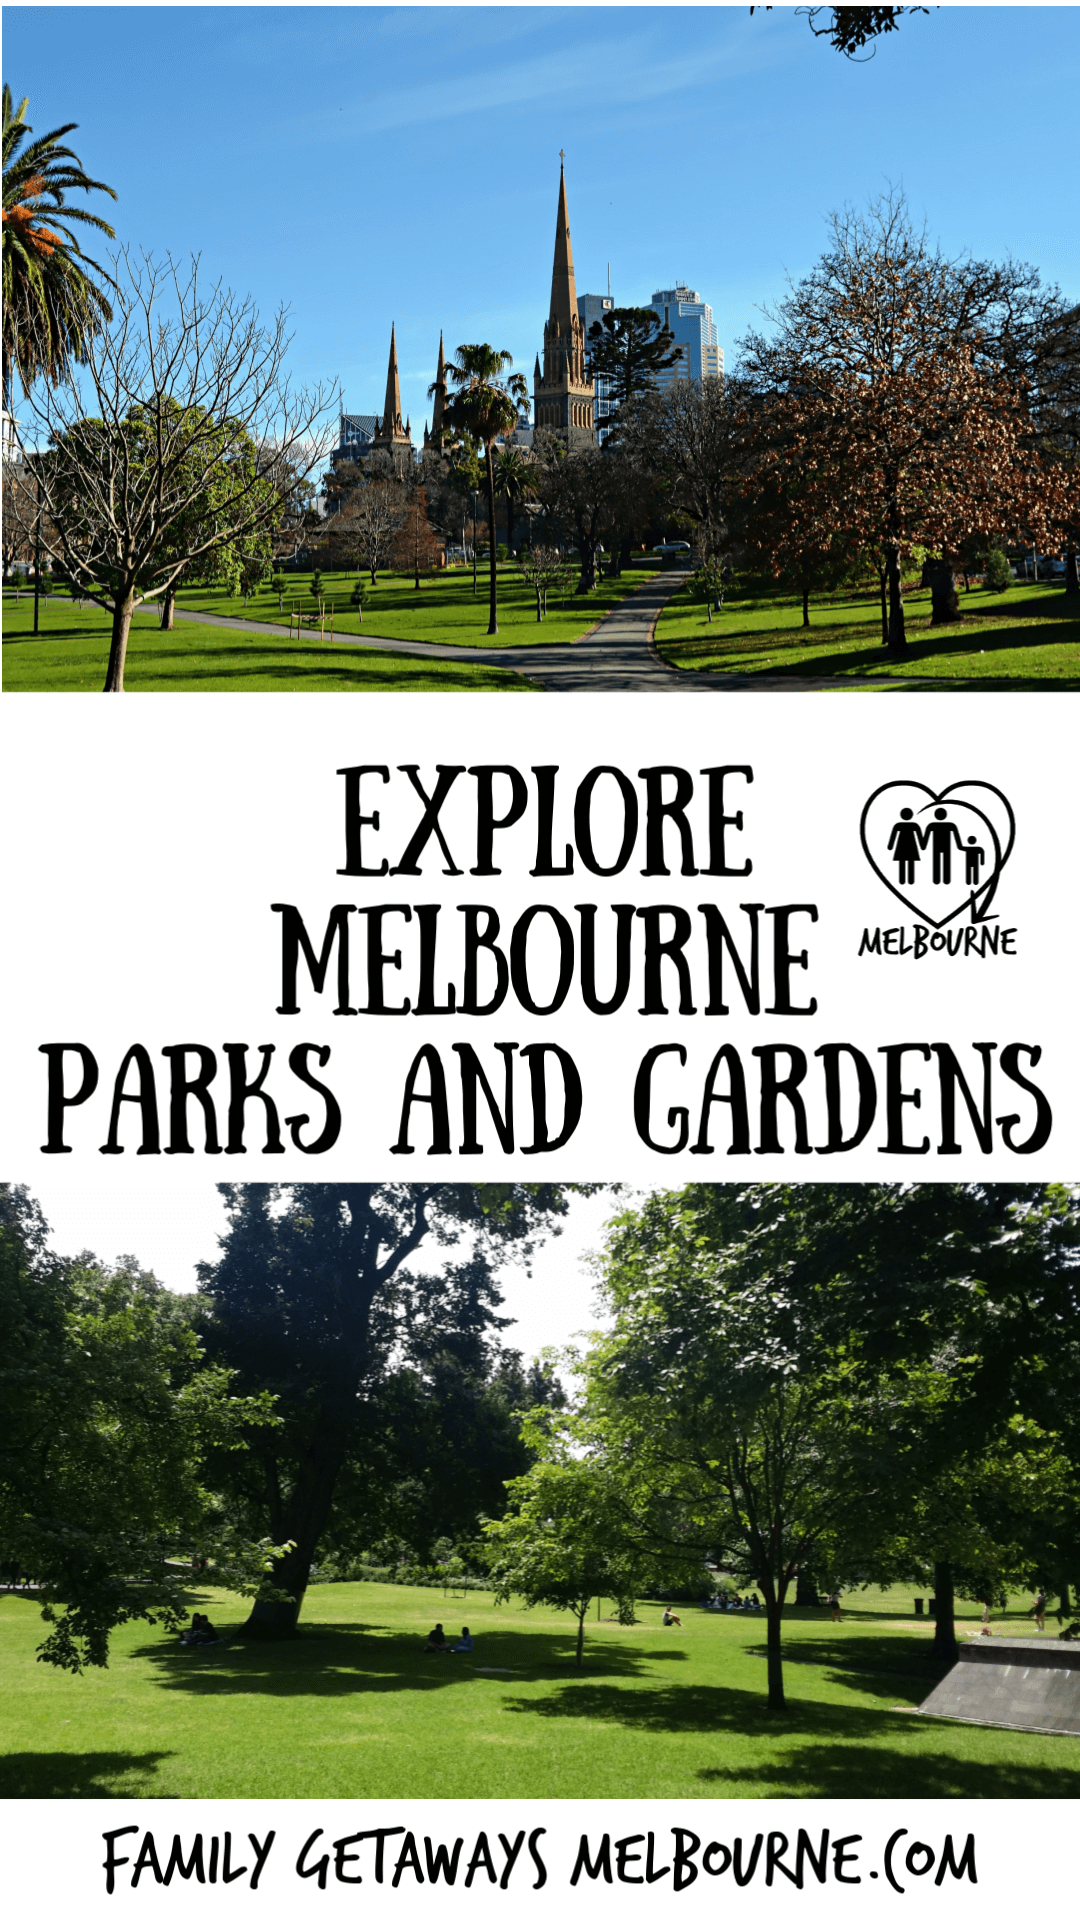 image of melbourne parks and gardens to pin to pinterest